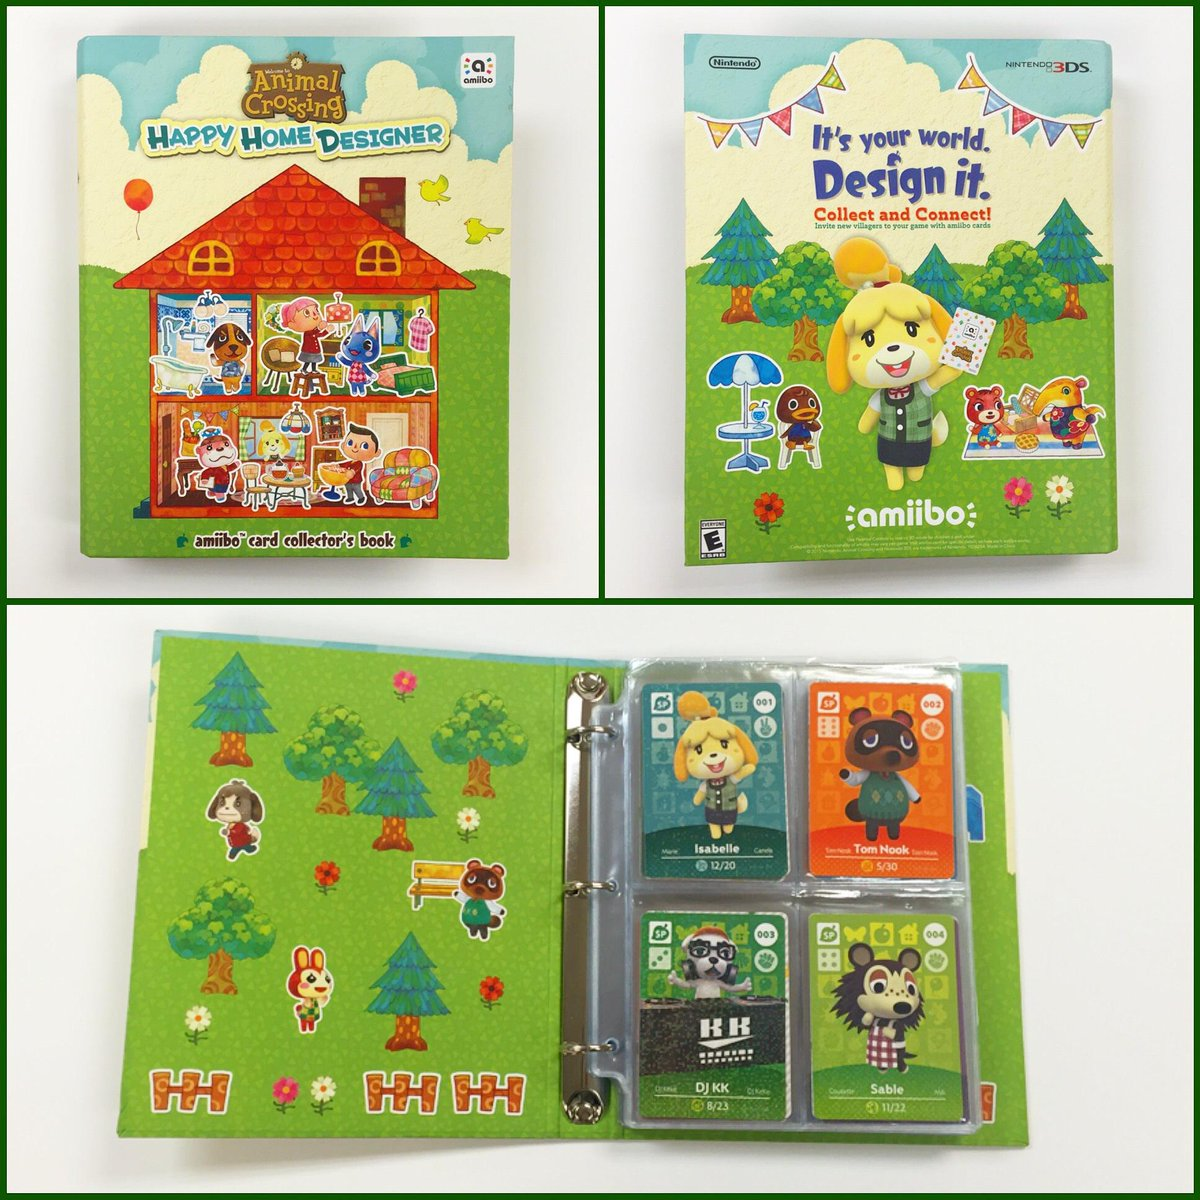 Nintendo Ny On Twitter 1 2 Starting Today Until 10 18 Get This Animal Crossing Happy Home